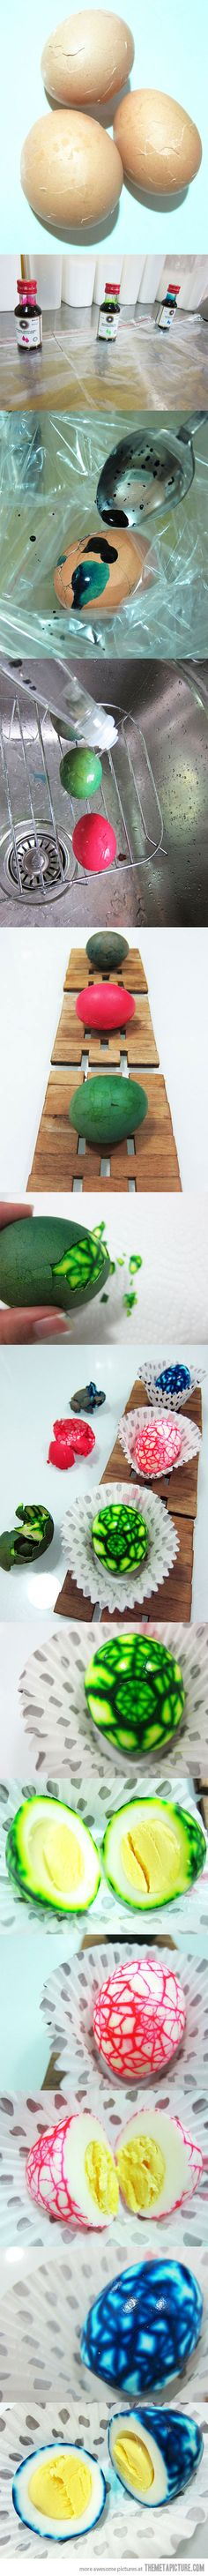 dinosaur eggs/easter eggs. Good idea!